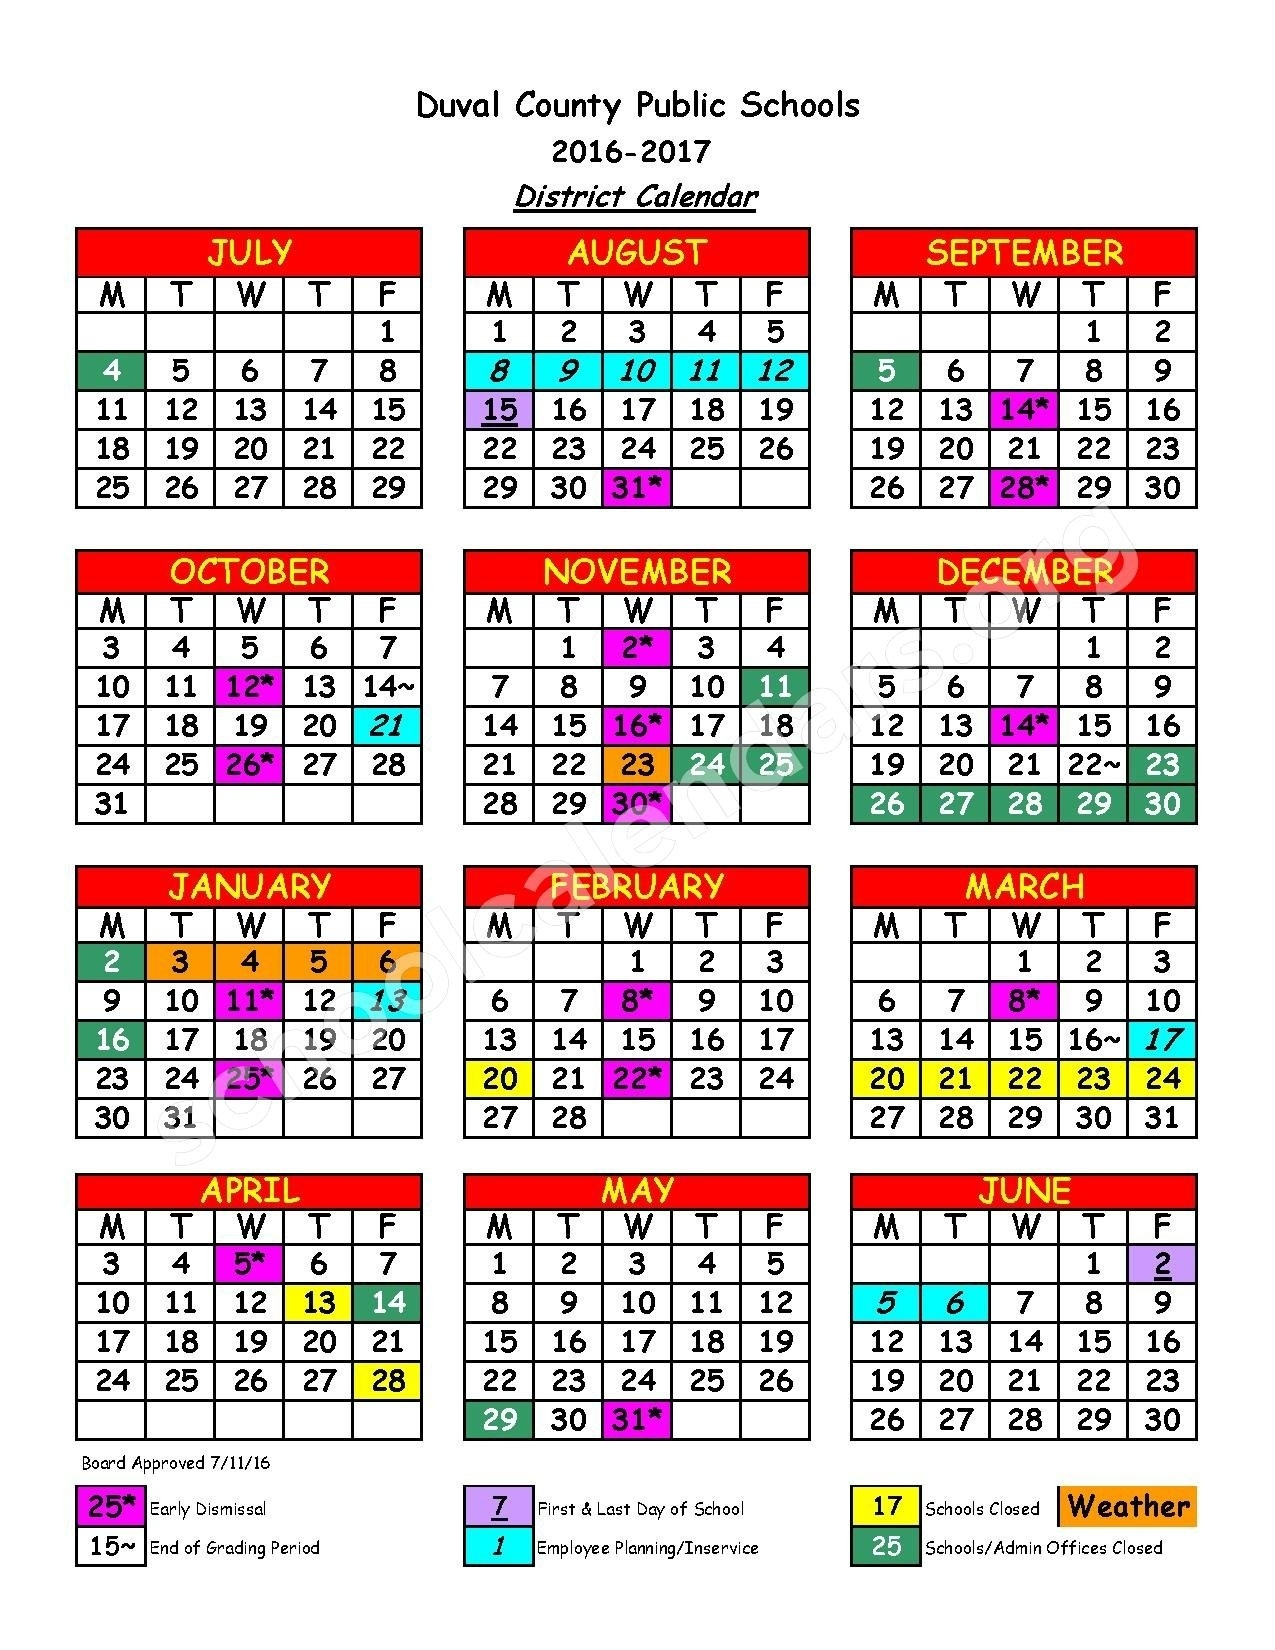 Duval County School Calendar 2016 2020 Exceptional School Calendar For Duval County • Printable Blank